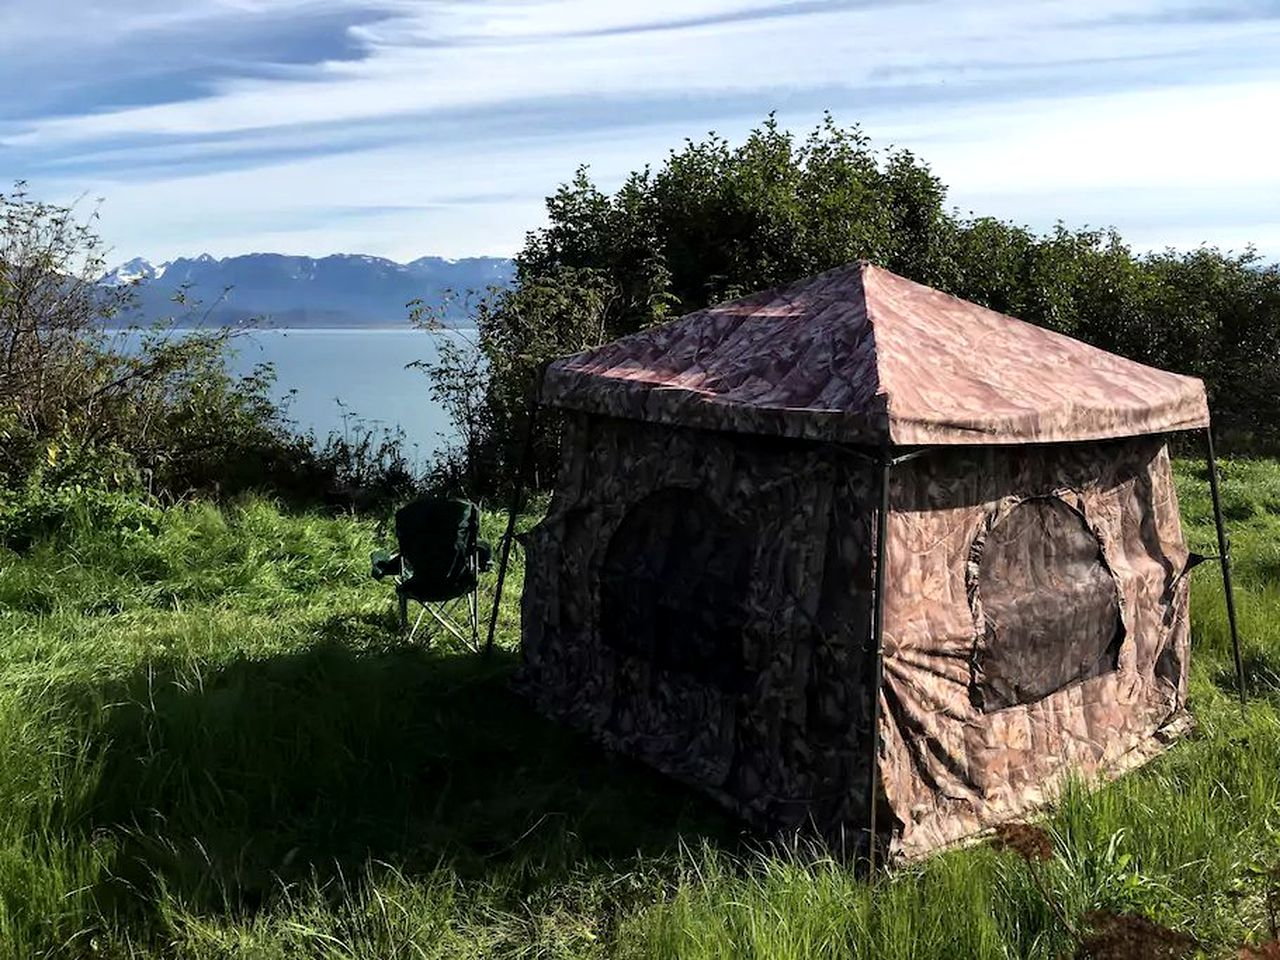 Tents (Homer, Alaska, United States)